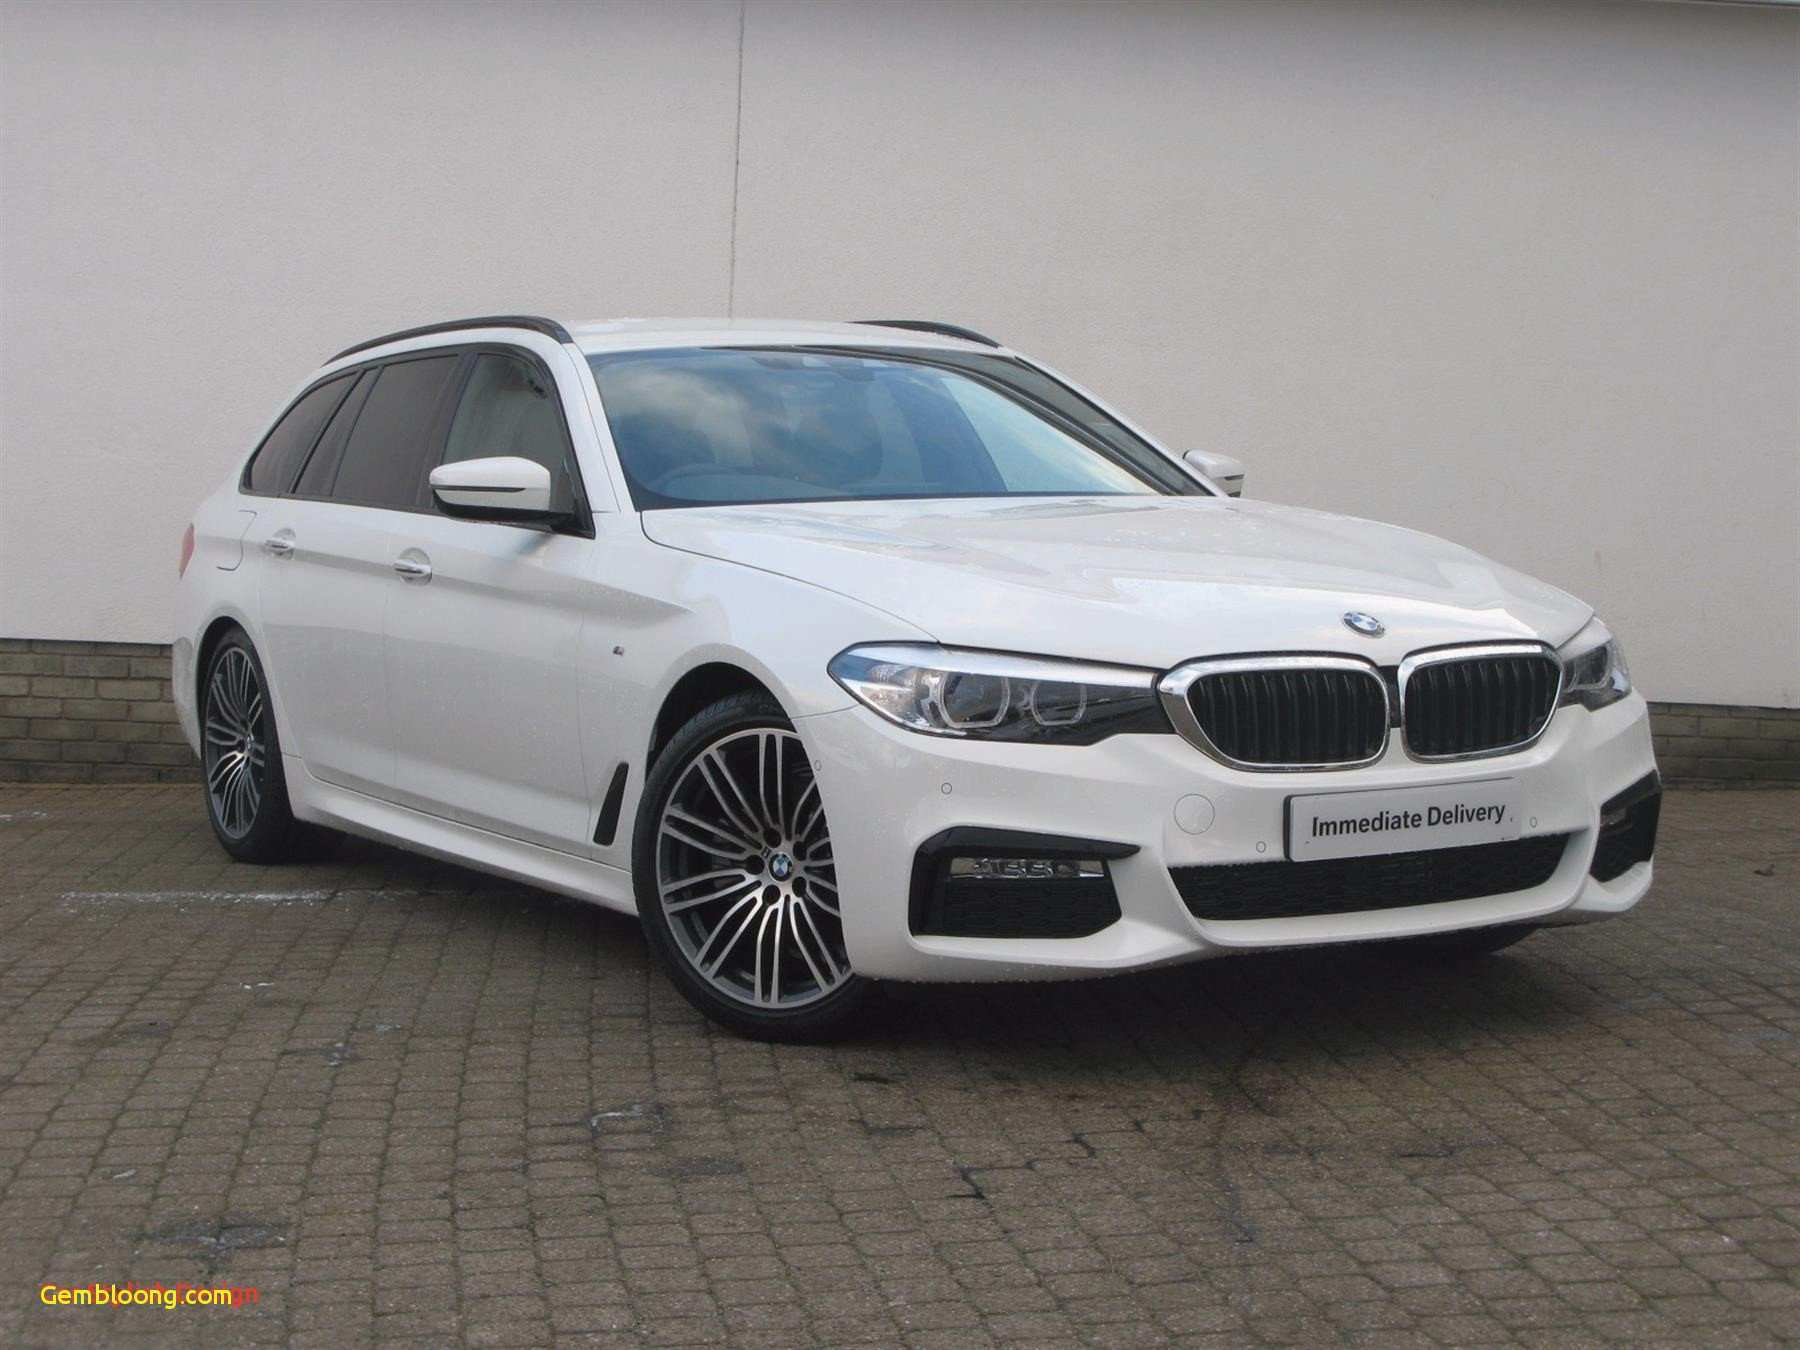 55 All New 2020 BMW 7 Series Perfection New Price And Release Date